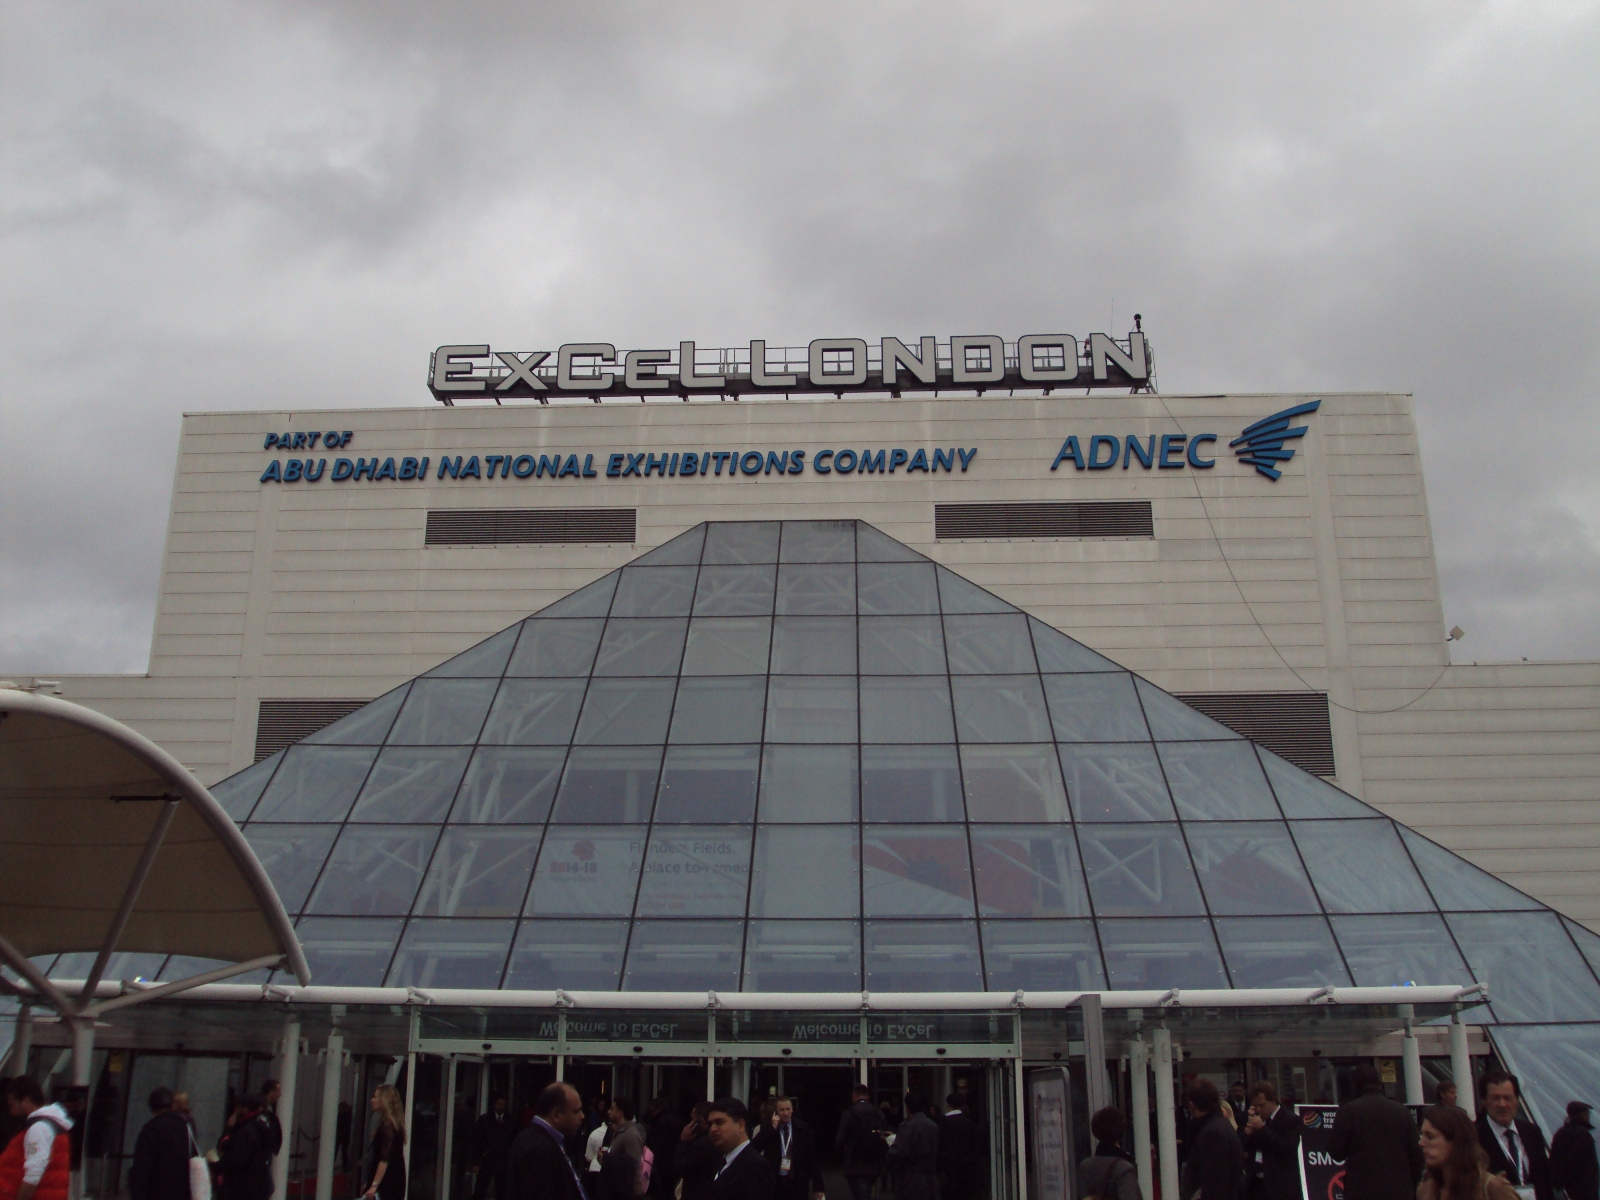 Superior Air at World Travel Market (London 4-7 November 2013)